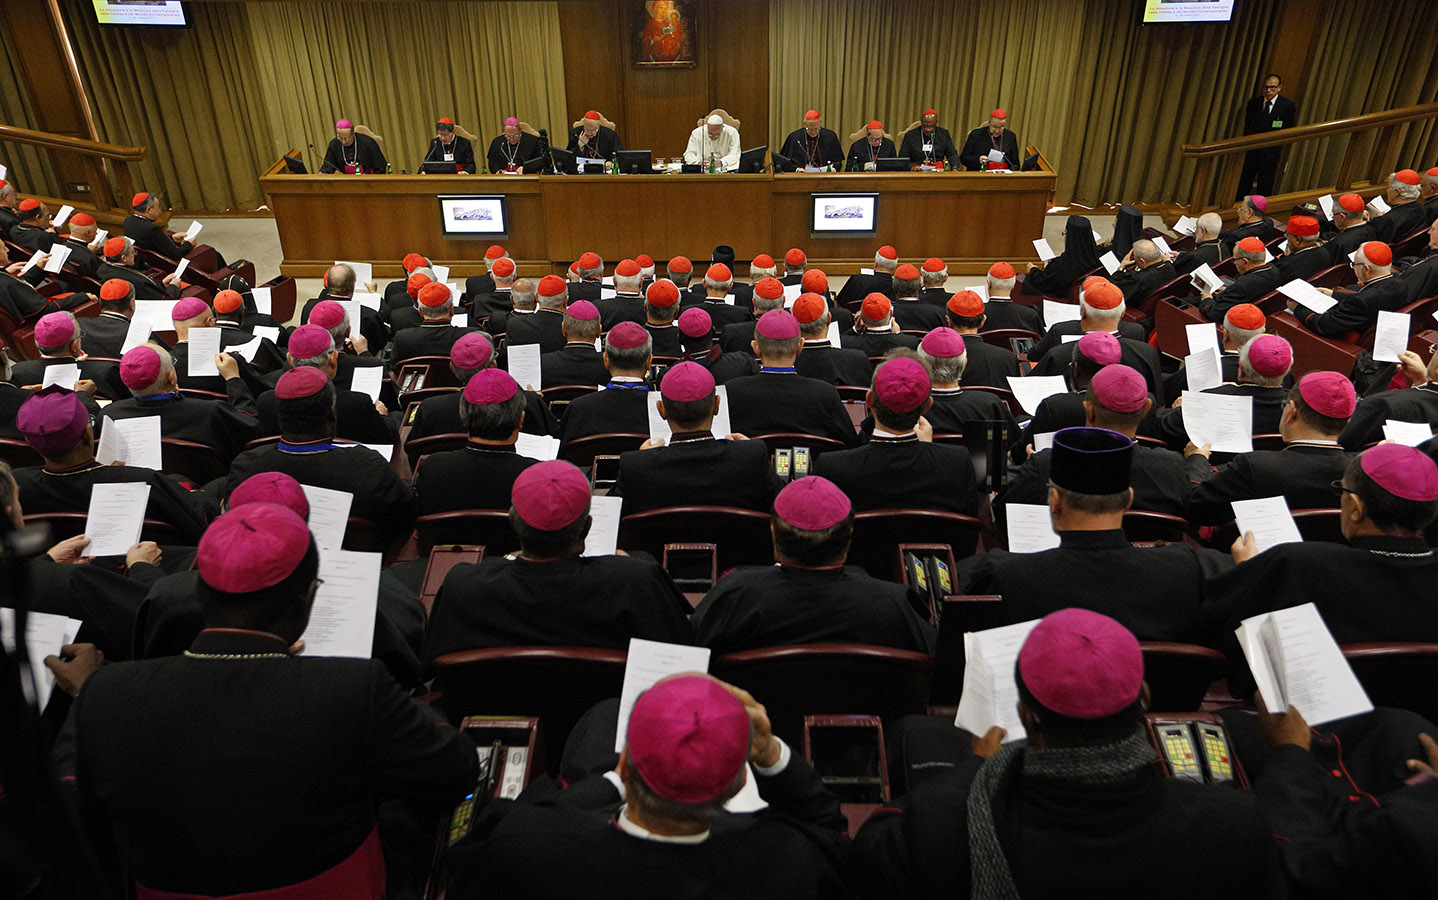 Episcopalis Communio gives the Synod Of Bishops teaching authority